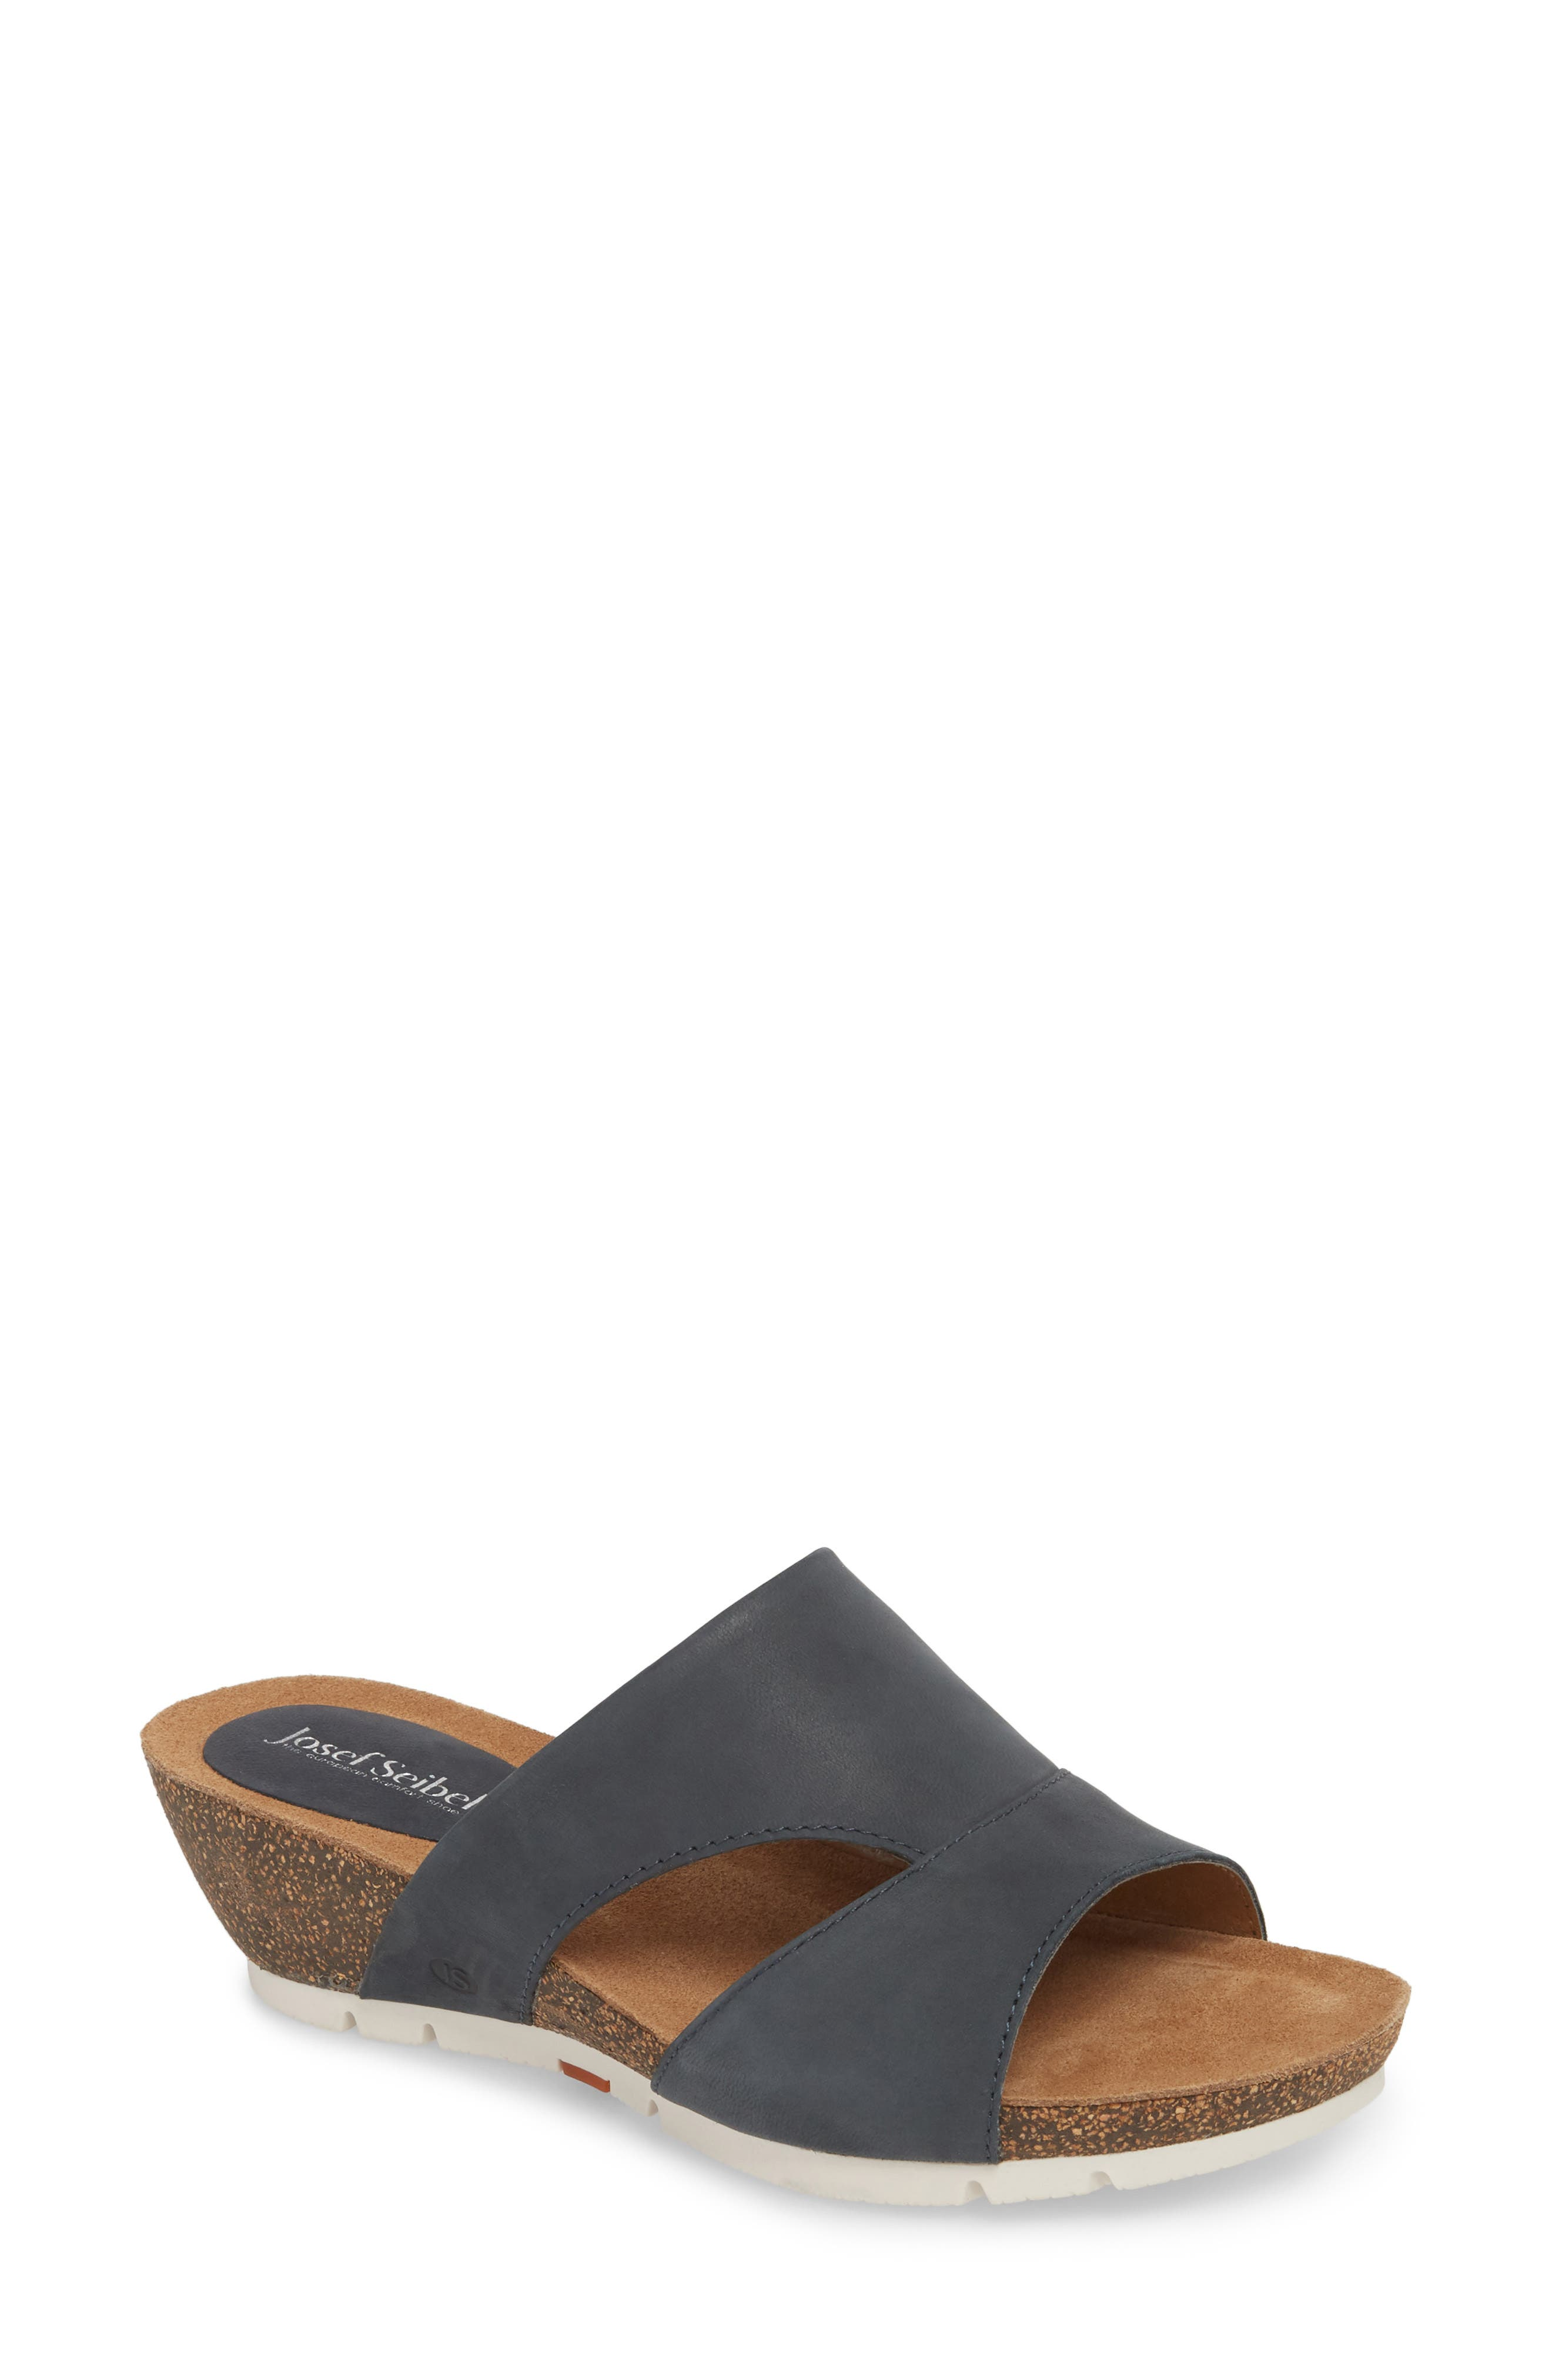 Josef Seibel Hailey 40 Slide Sandal (Women)